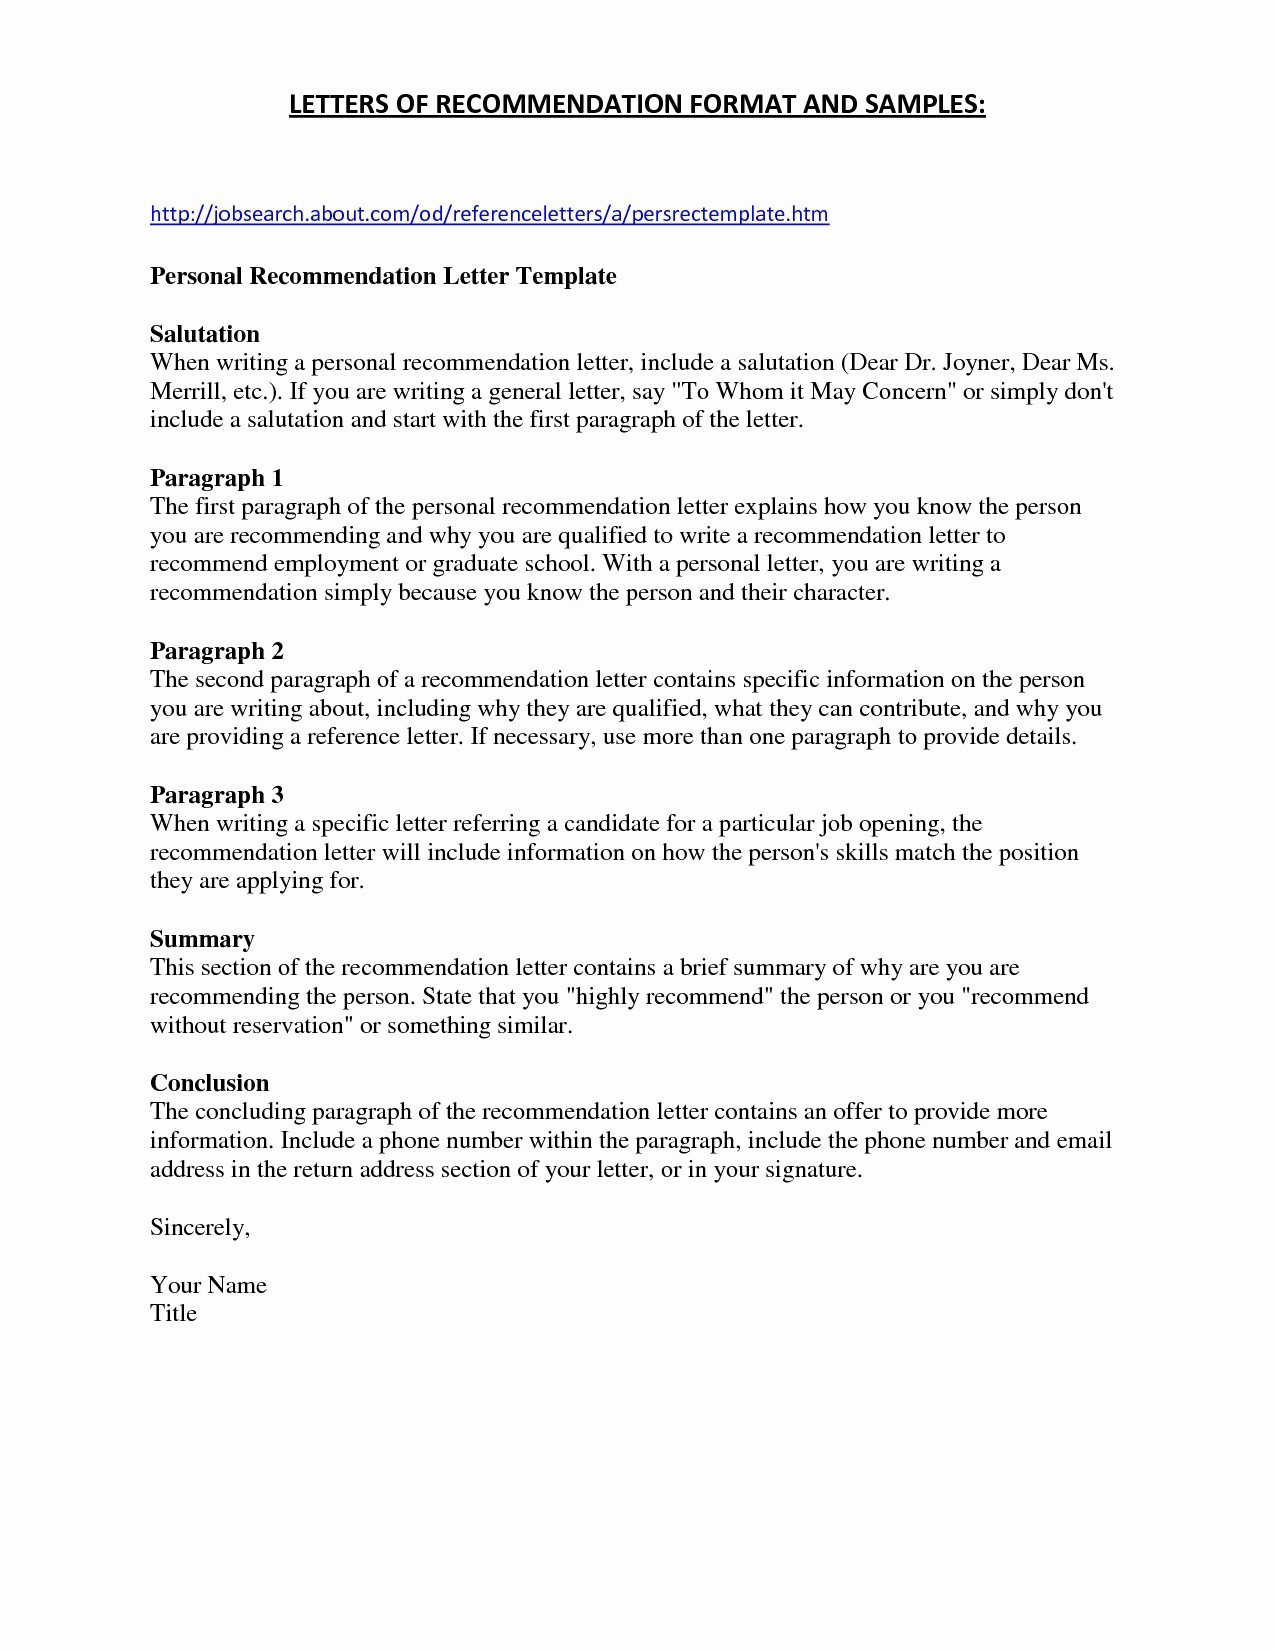 Business Analyst Resume Objective - Functional Business Analyst Resume New It Business Analyst Resume